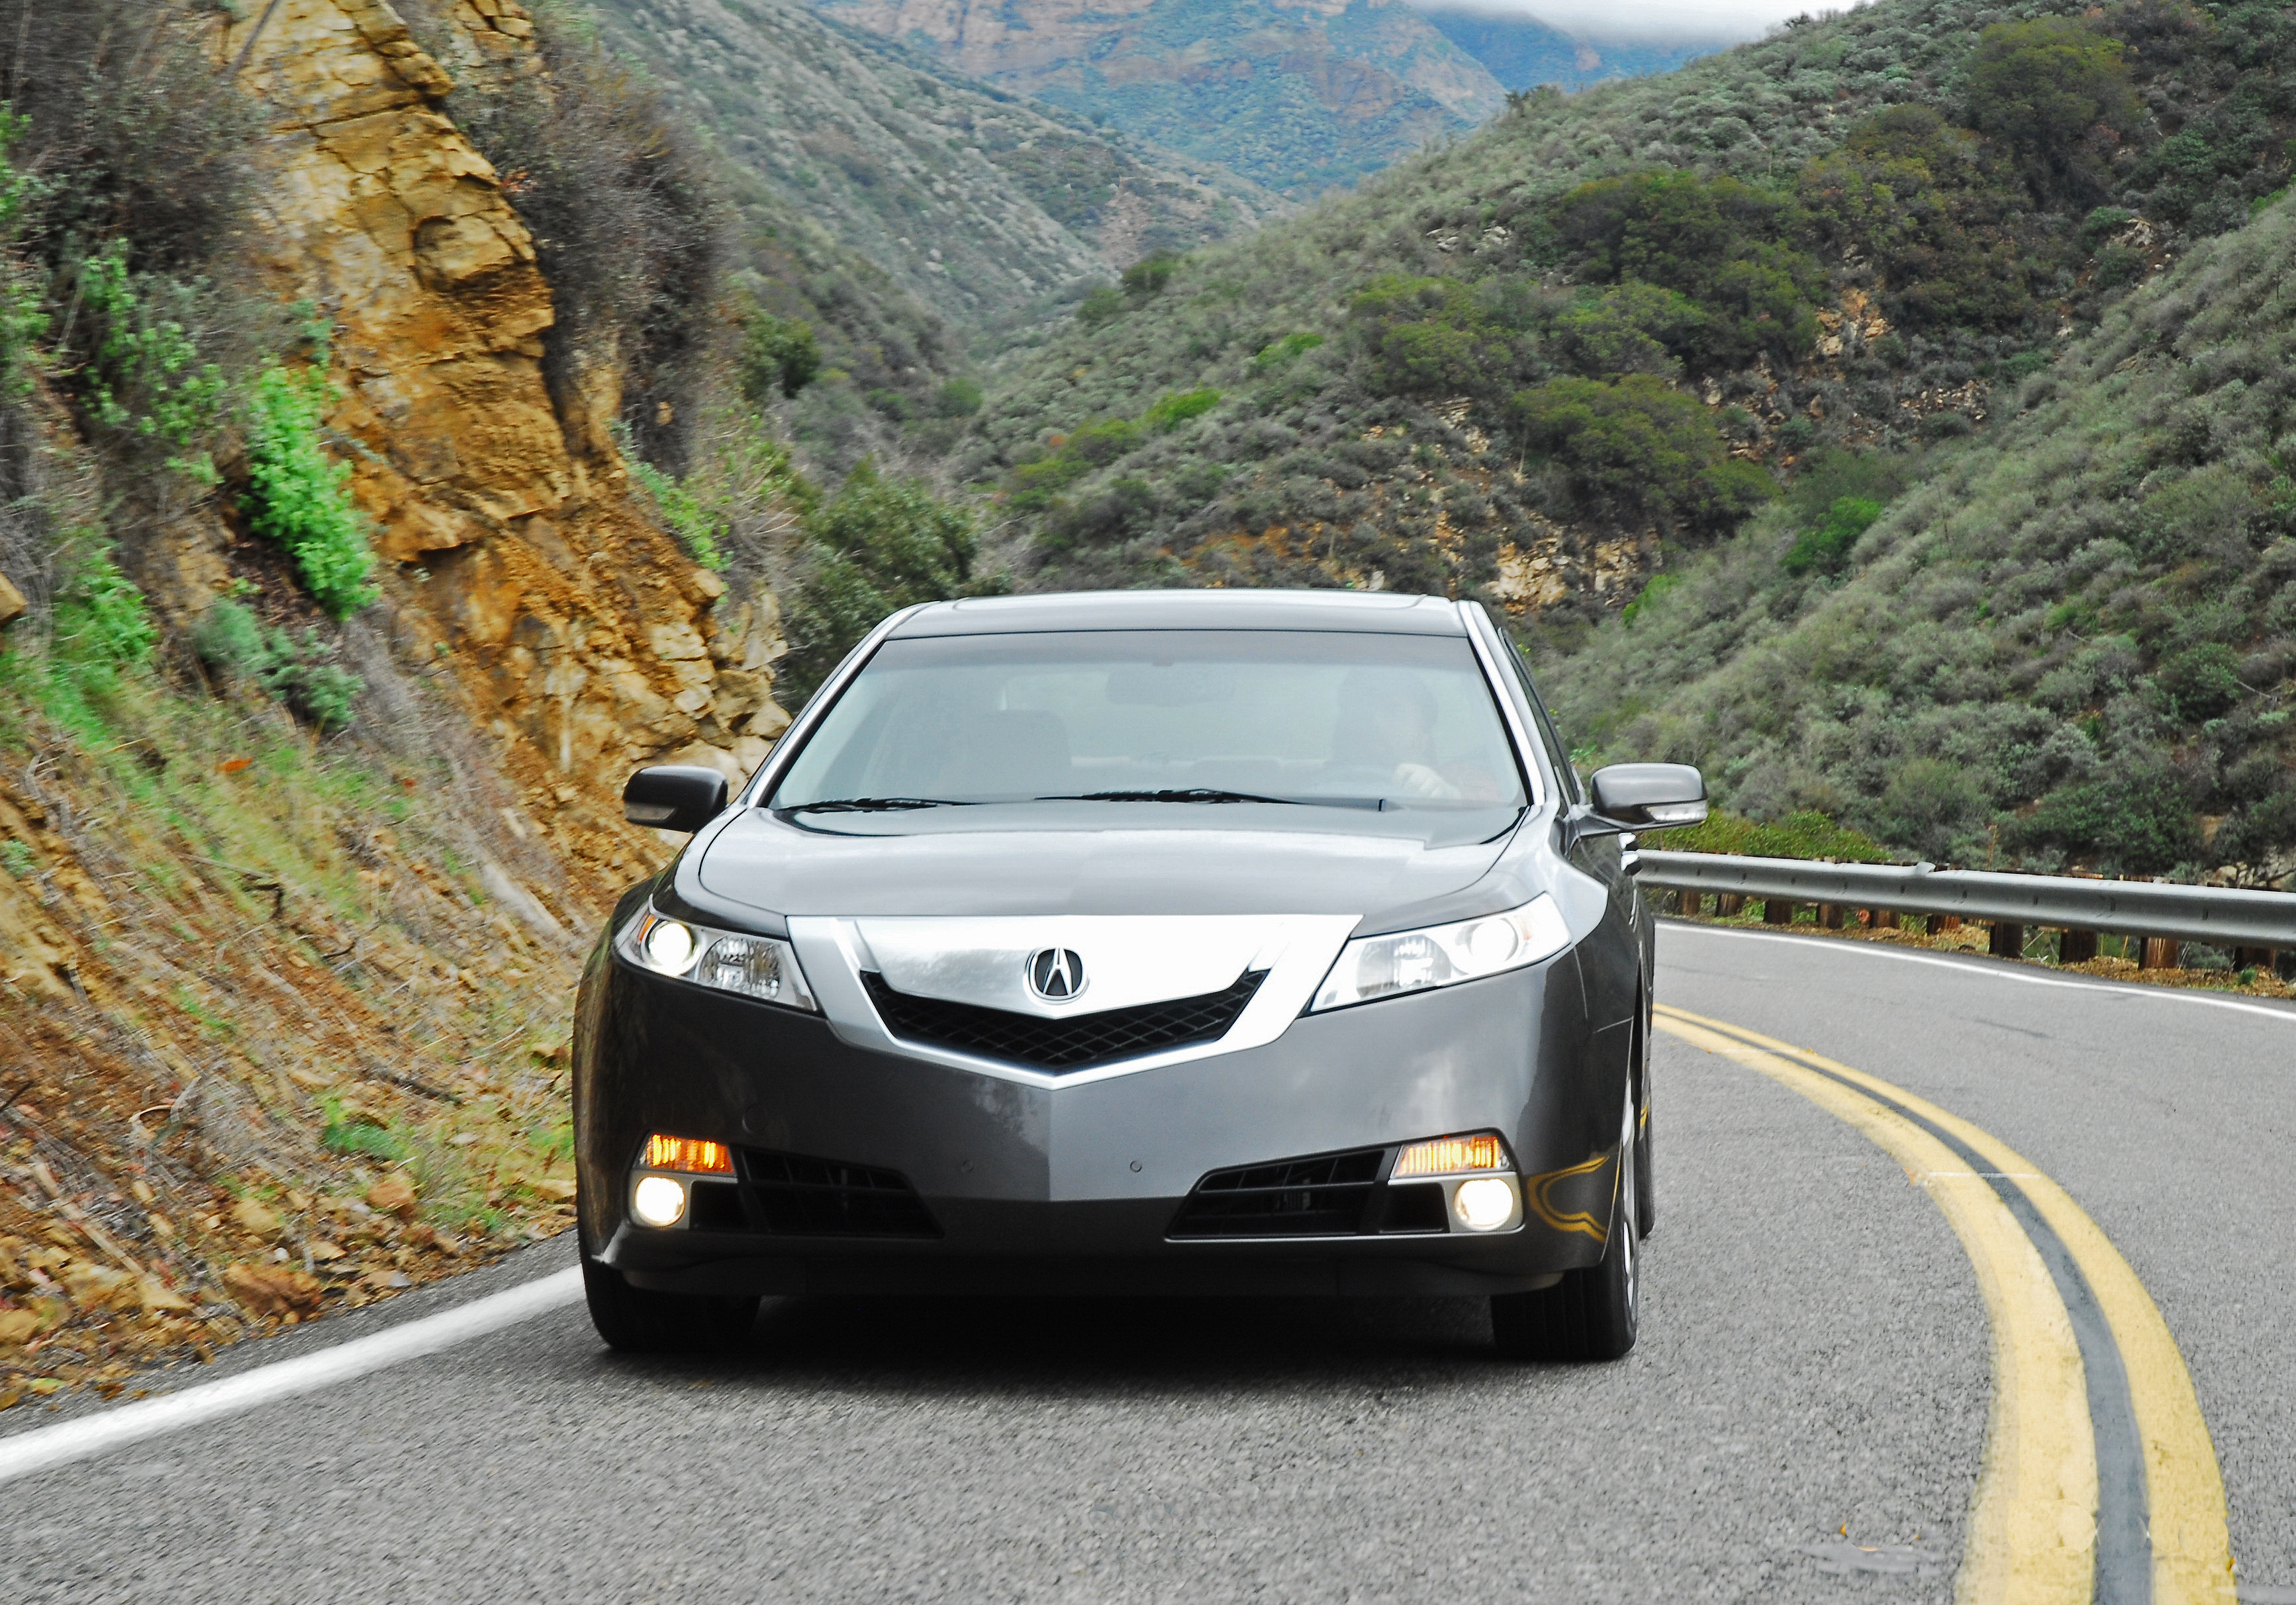 a any on installed r comments for looking acura honda tl led also intake air gen halo civic suggestions headlights cold my